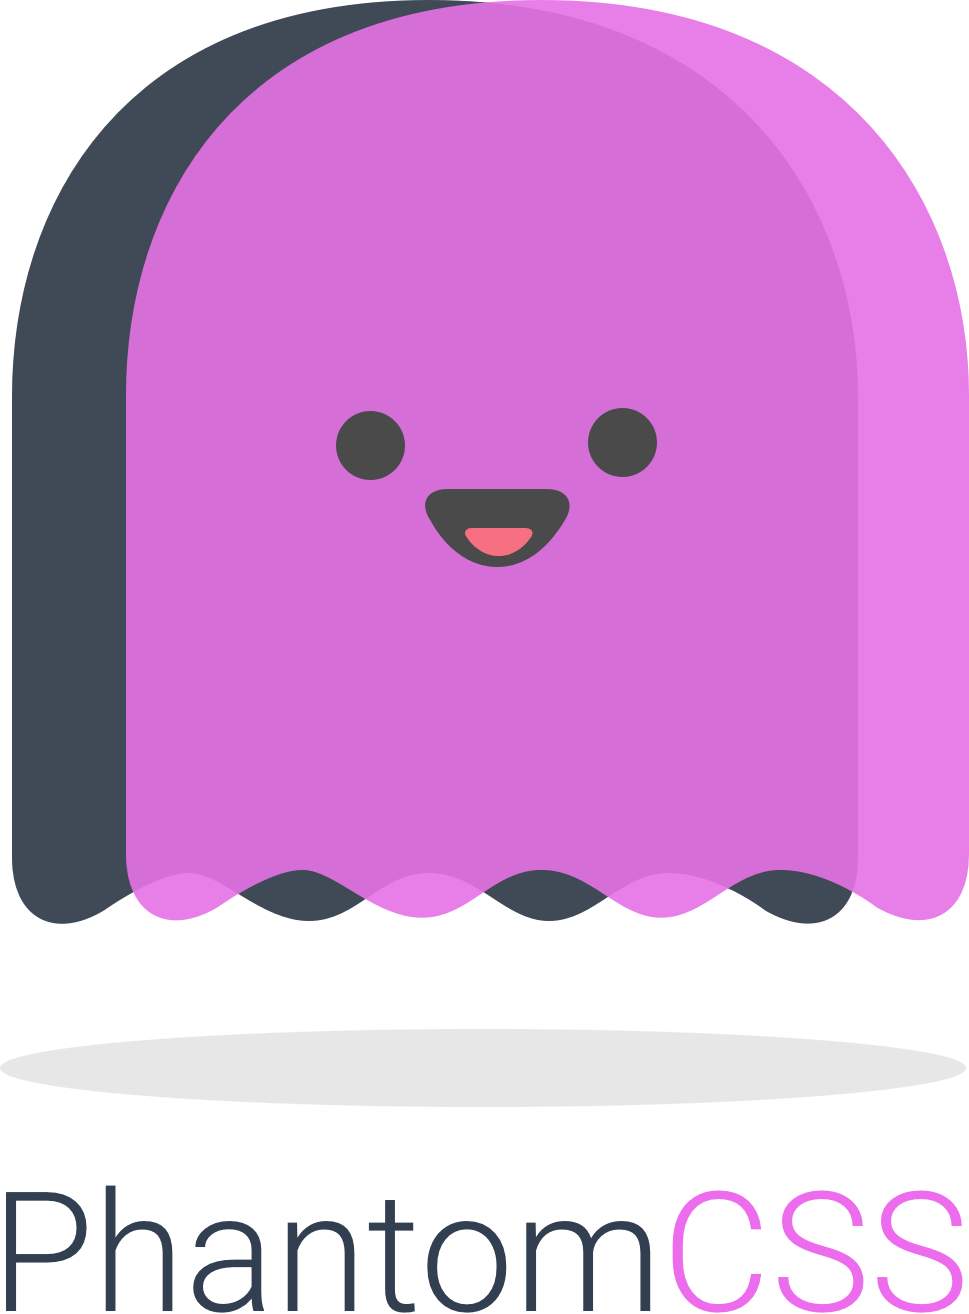 Cute image of a ghost